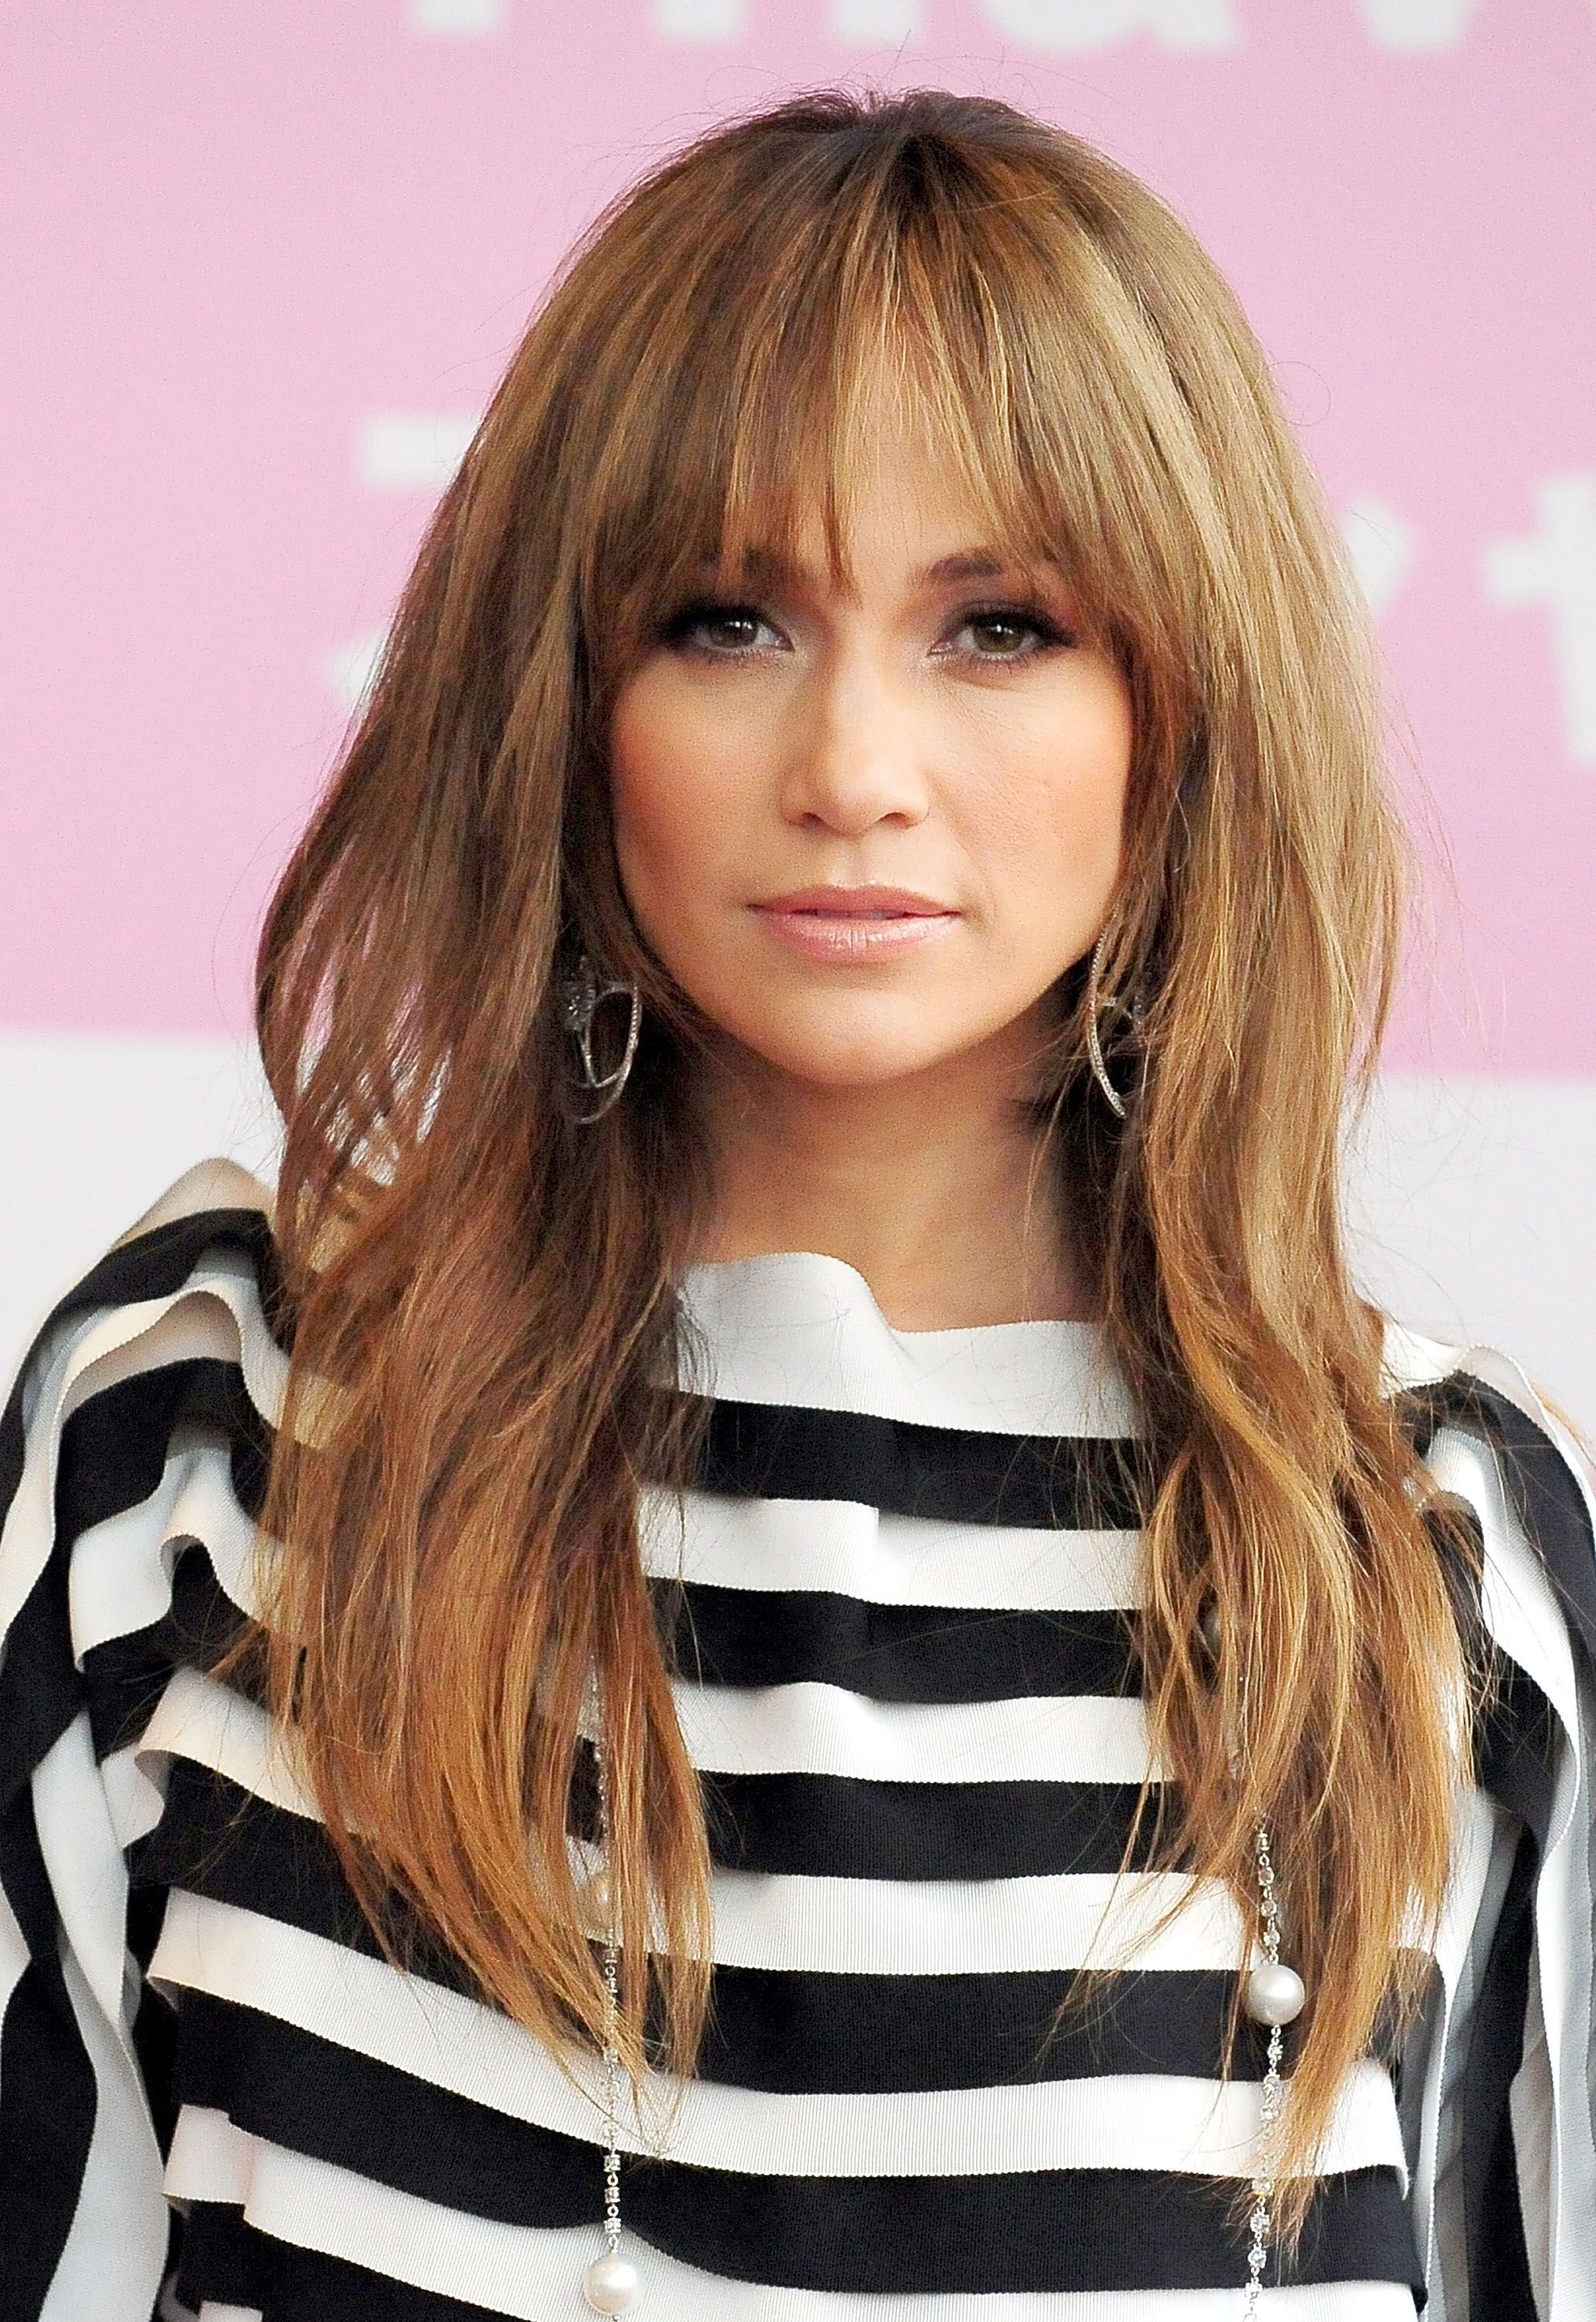 Layered Hair With Fringe Styles The Layered Hair With Fringe Styles can become your desire when ...